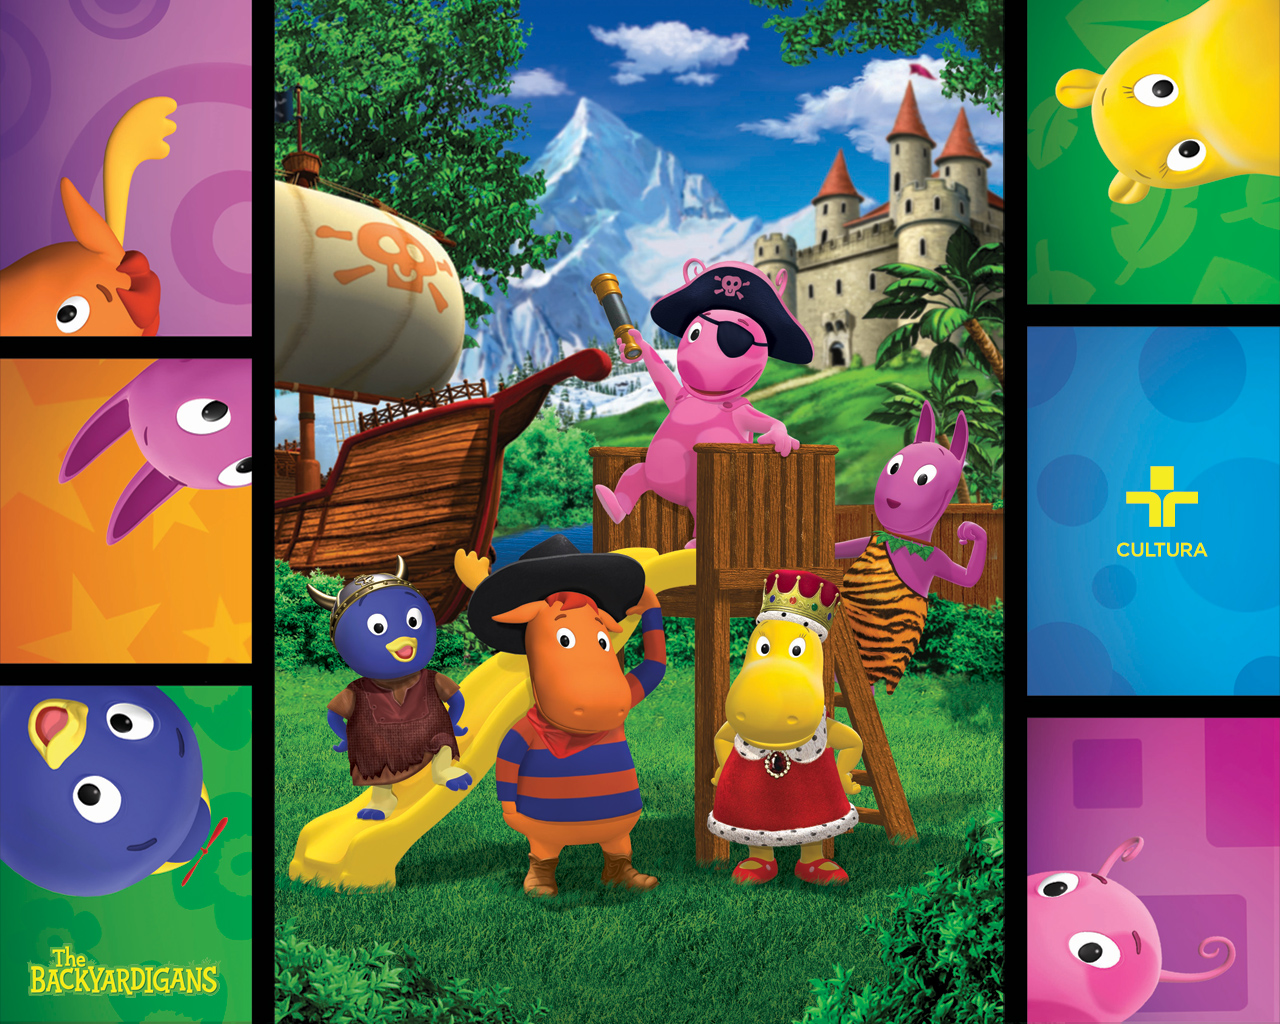 backyardigans wallpaper 1 quintal da cultura cmais o portal de